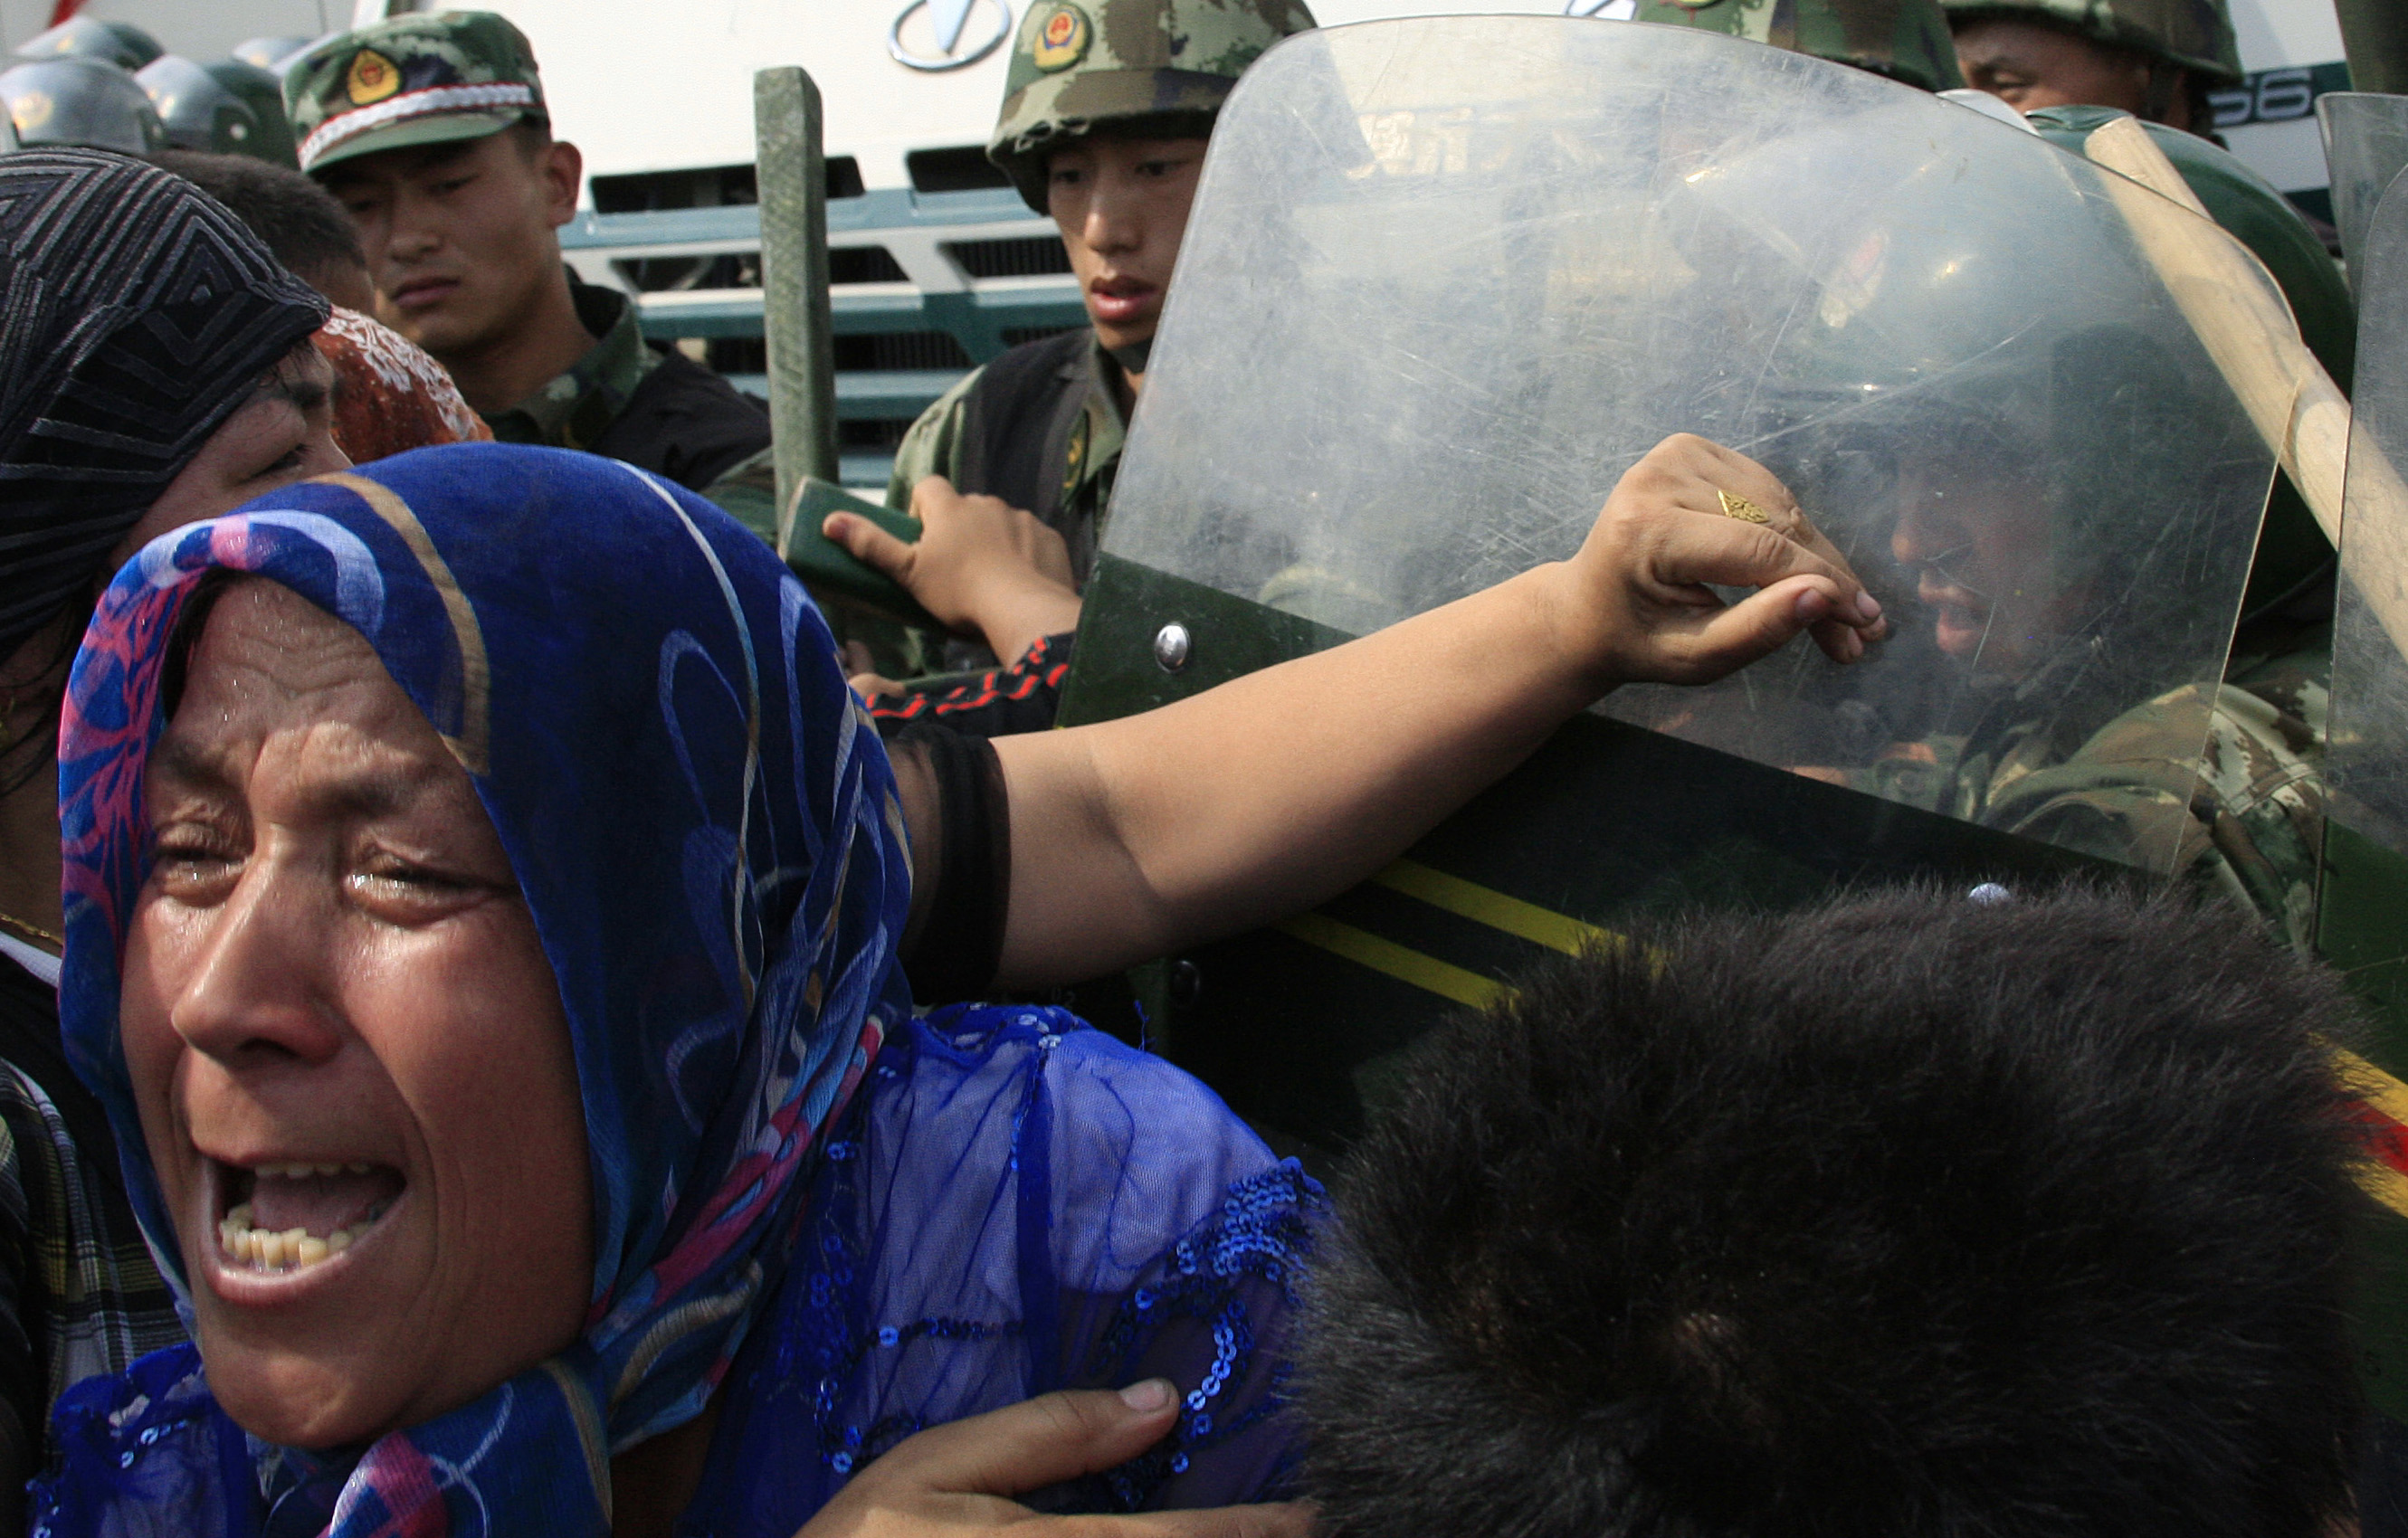 A woman pushes at Chinese paramilitary police wearing riot gear as a crowd of angry locals confront security forces on a street in the city of Urumqi in China's Xinjiang Autonomous Region on July 7, 2009.